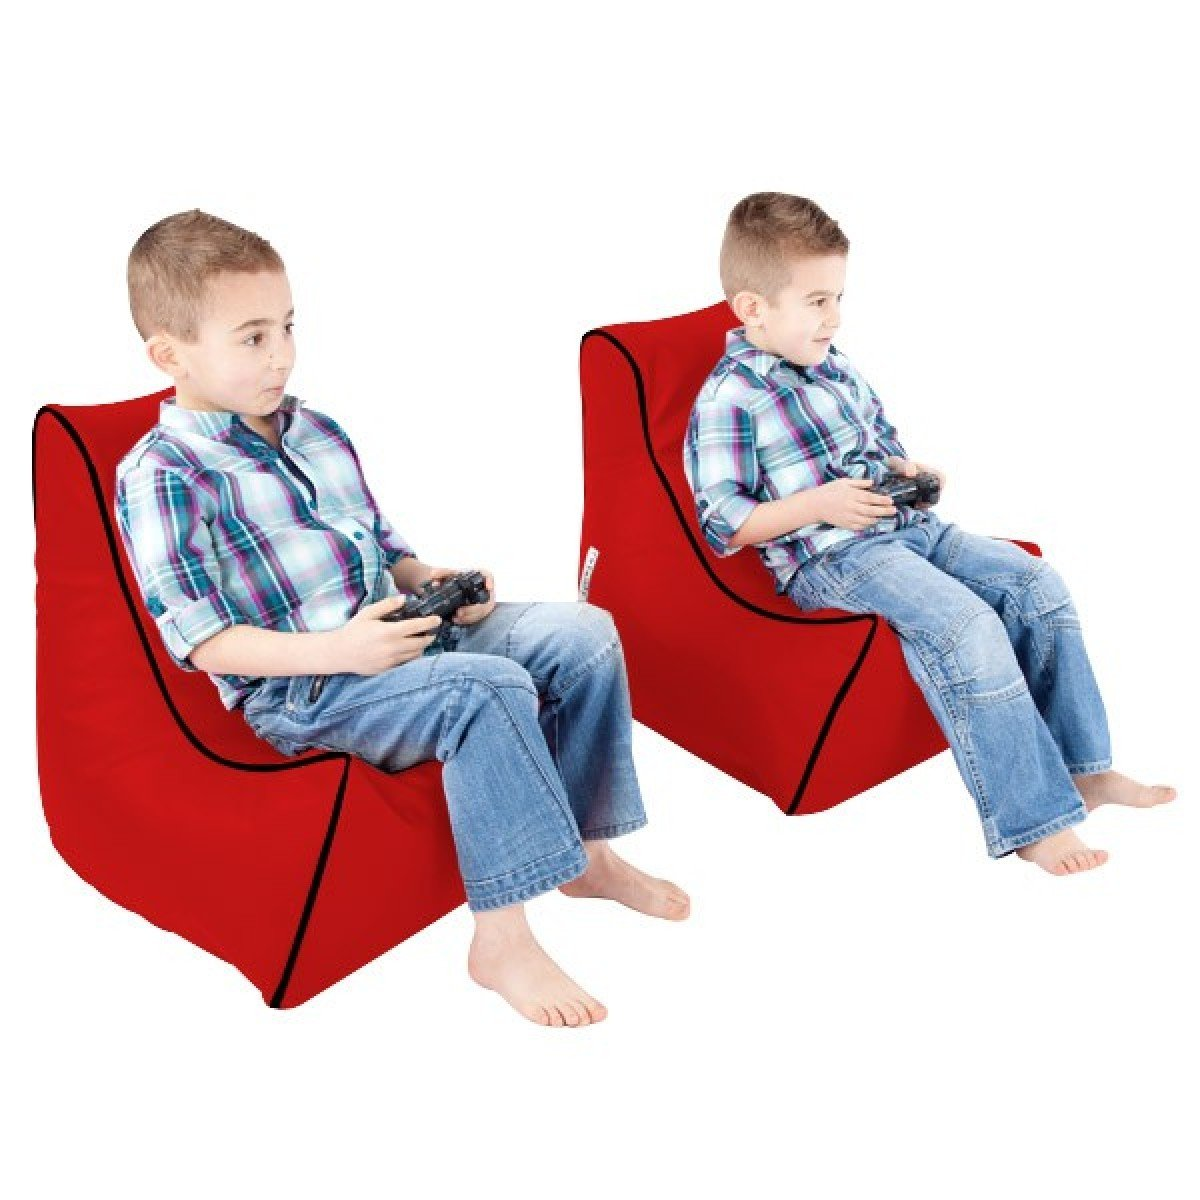 Children's Gaming Chairs Kids Gaming Chair Home Furniture Design